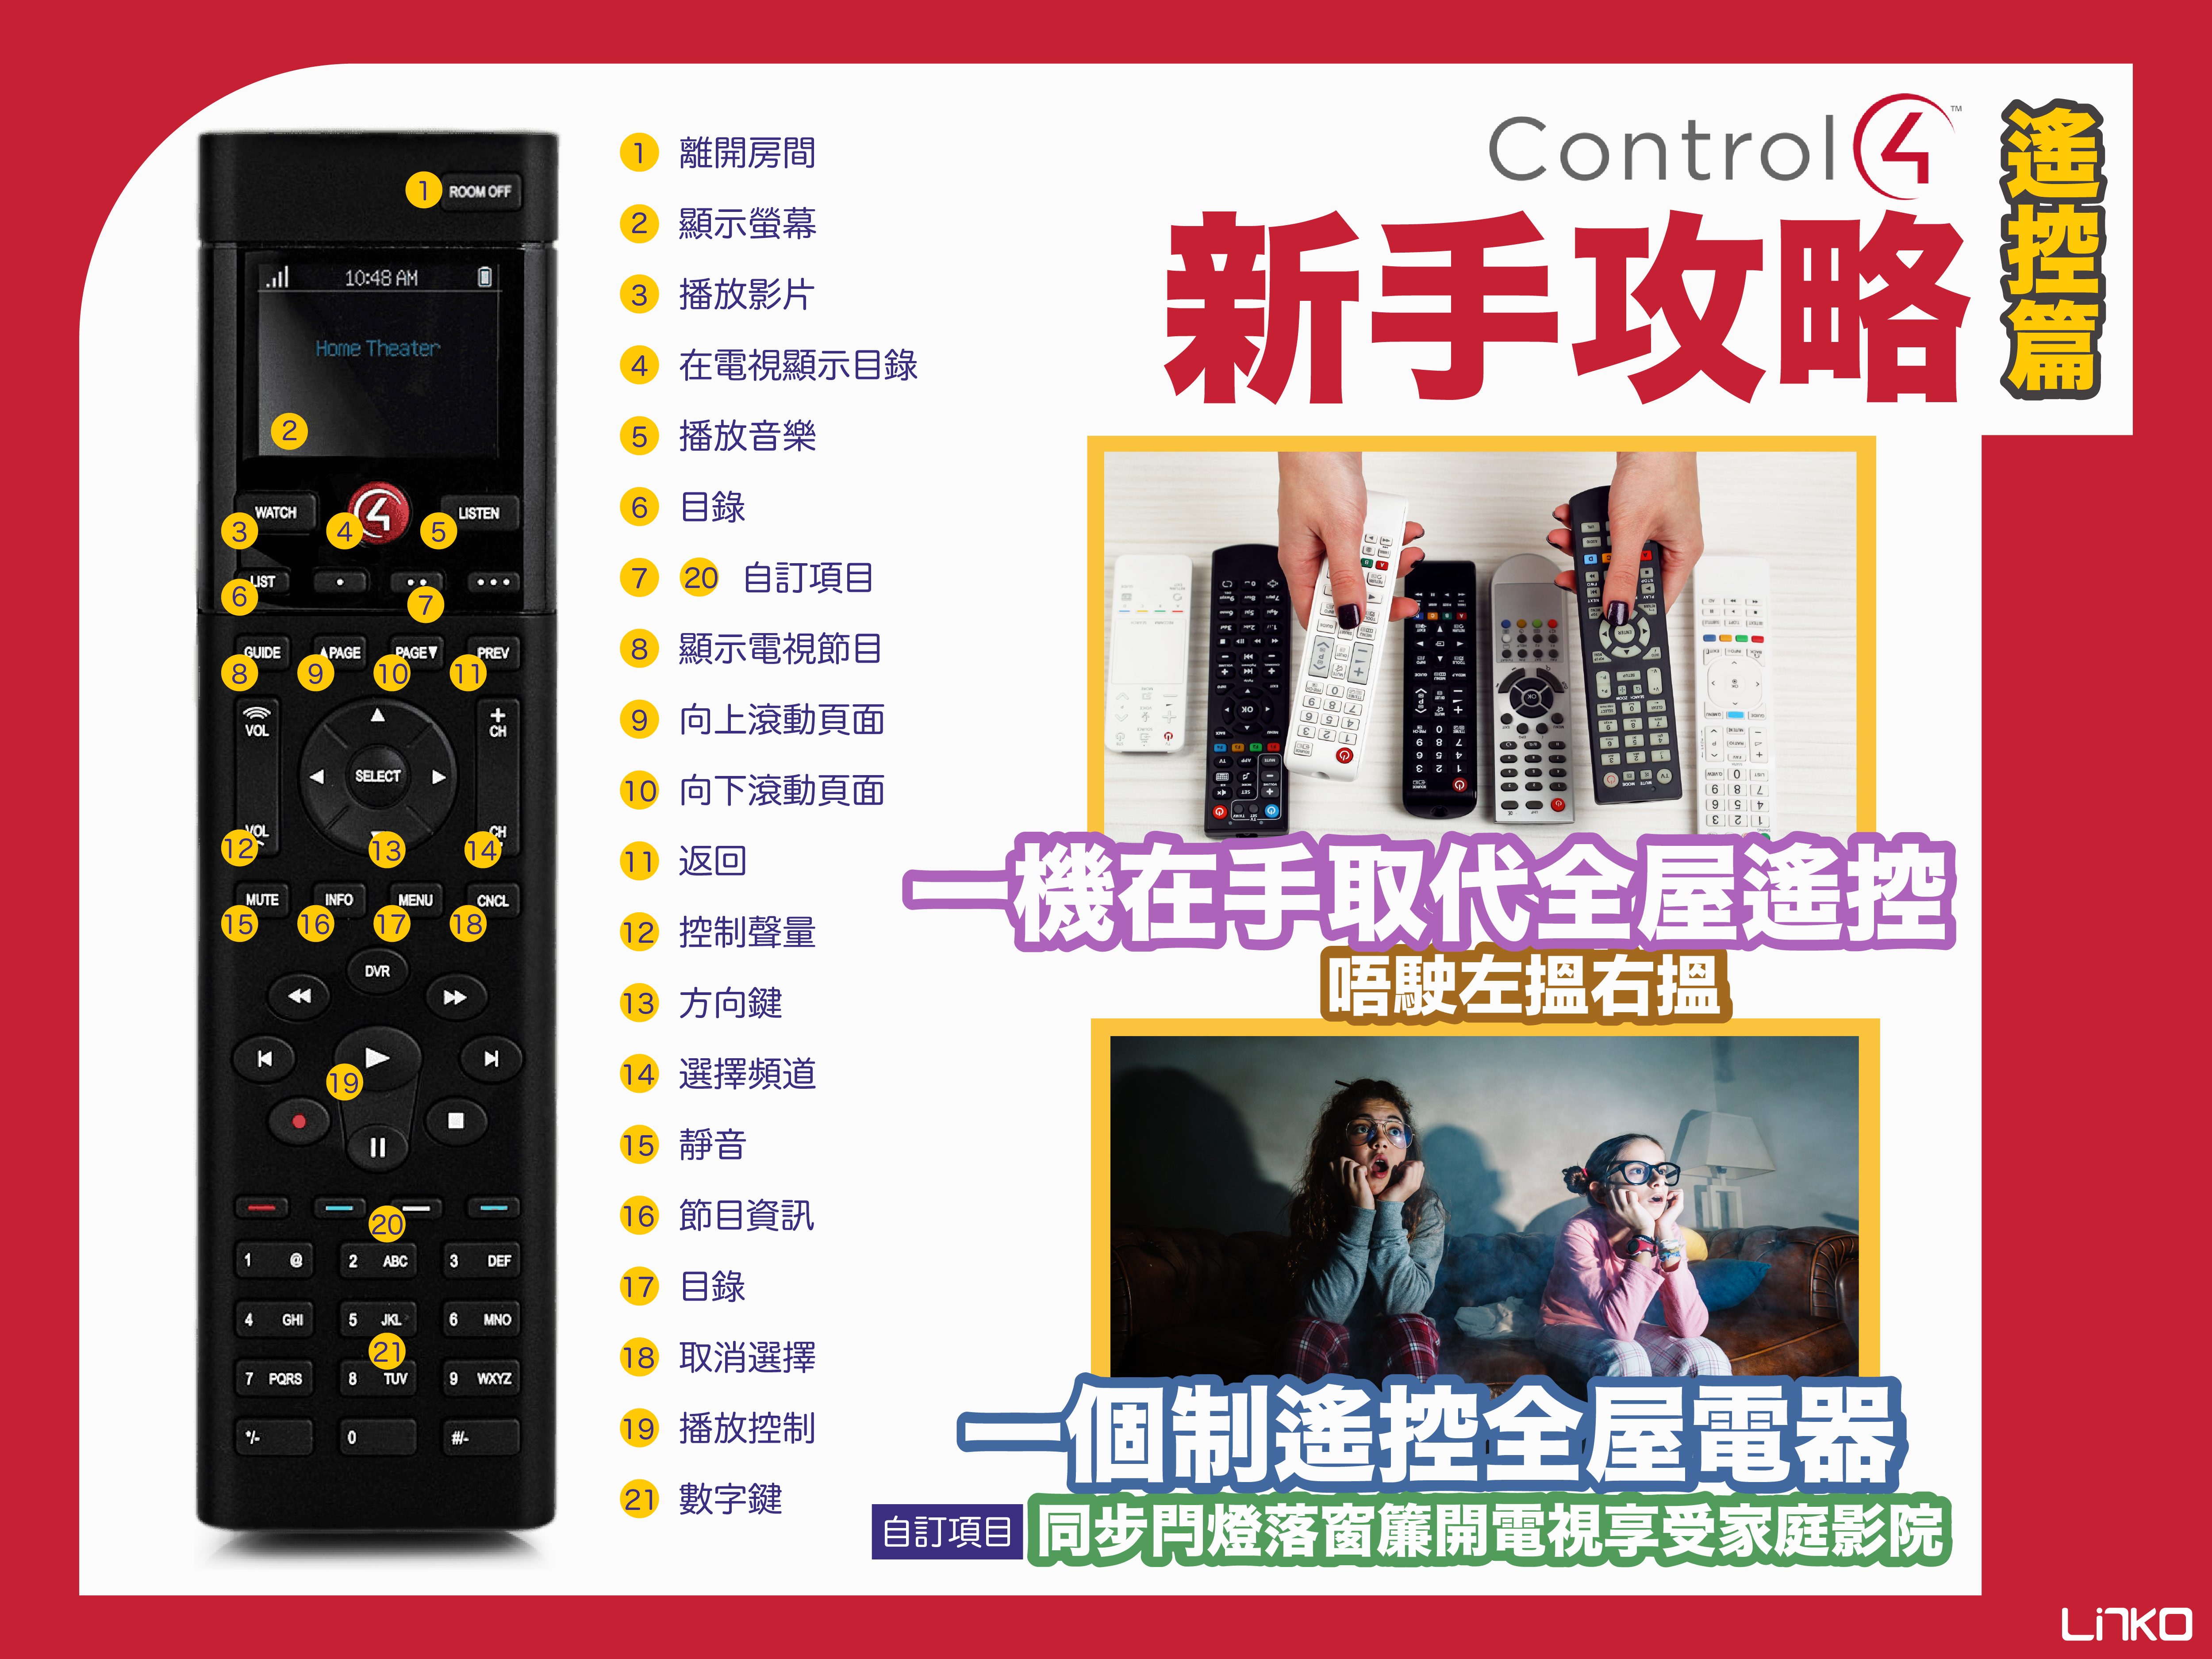 【Control4】新手攻略|遙控篇(Chinese Version Only)